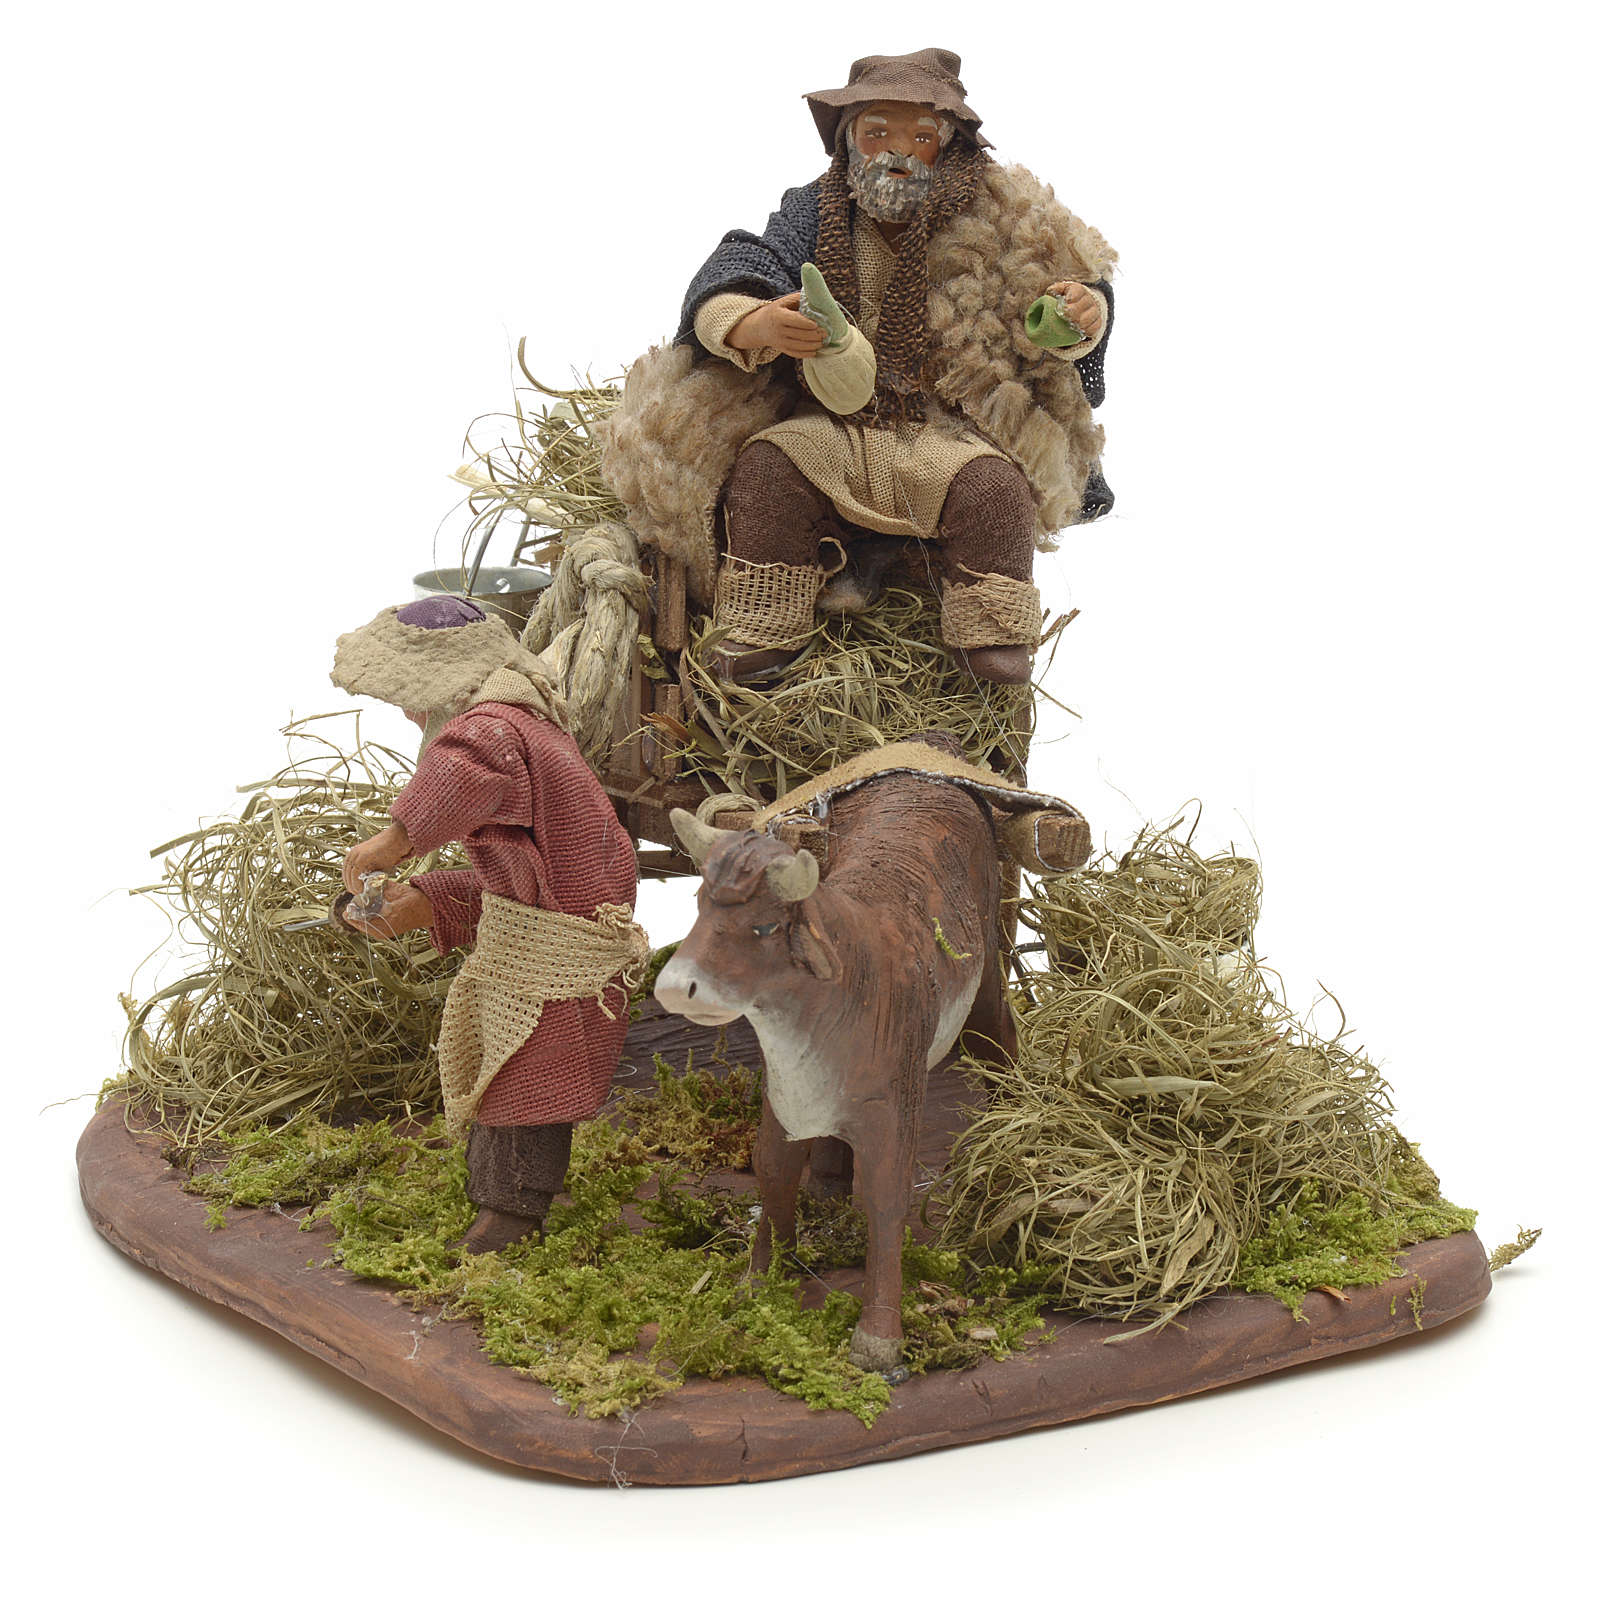 Nativity set accessory Country scene cart 10 cm clay figurines 4